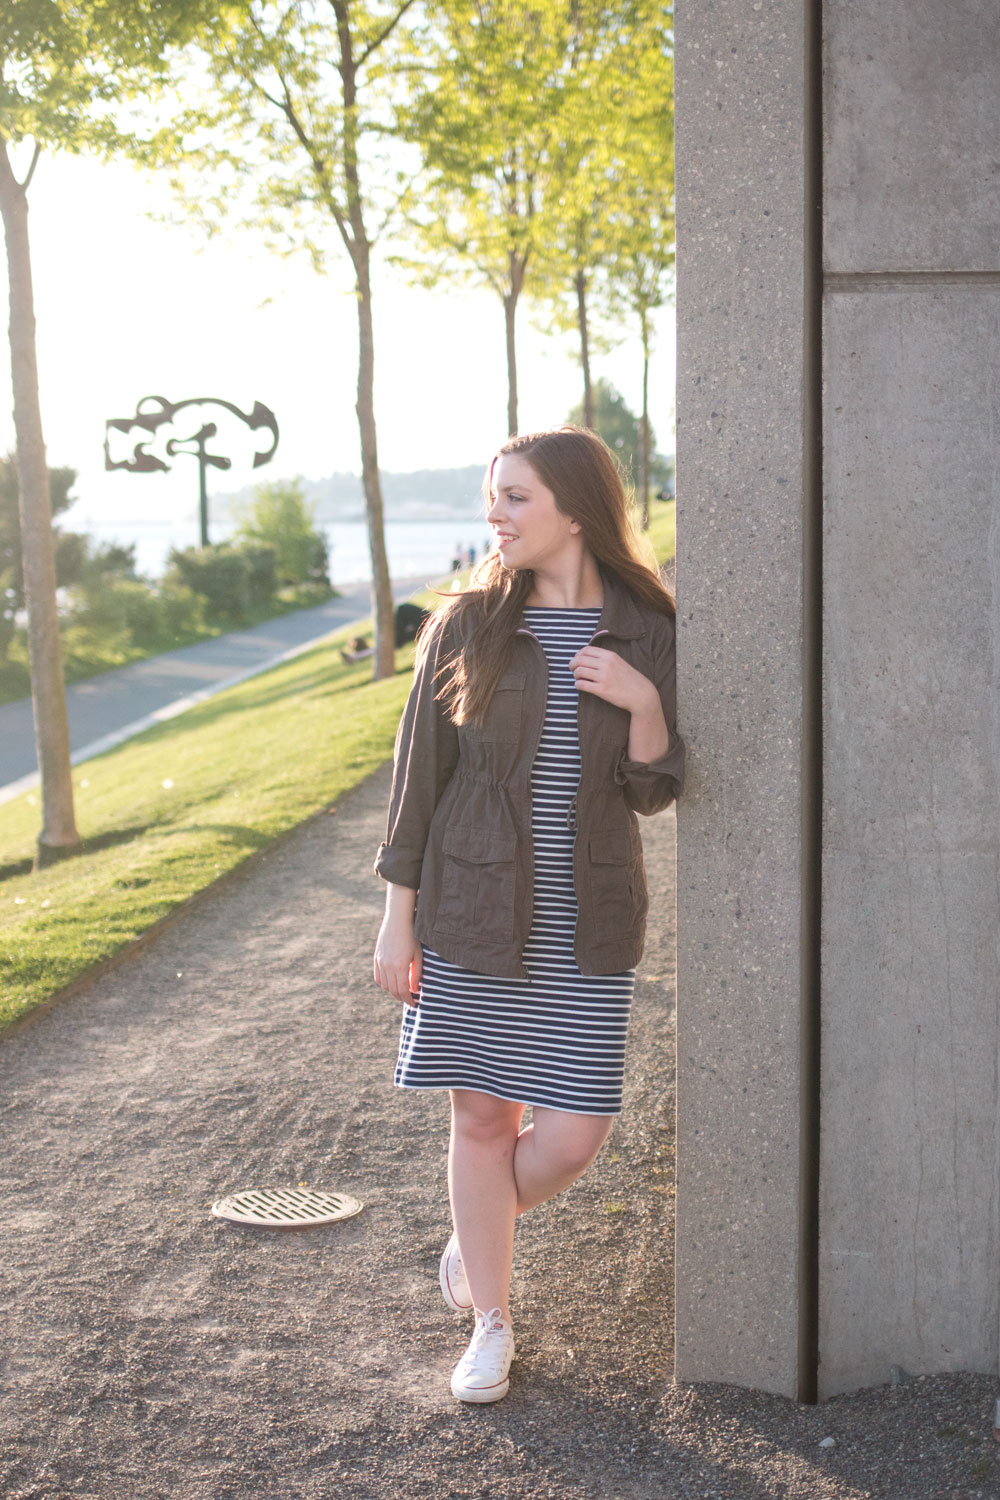 How to Wear a Striped Dress with Sneakers featuring Converse Low Tops // Hello Rigby Seattle Fashion & Style Blog